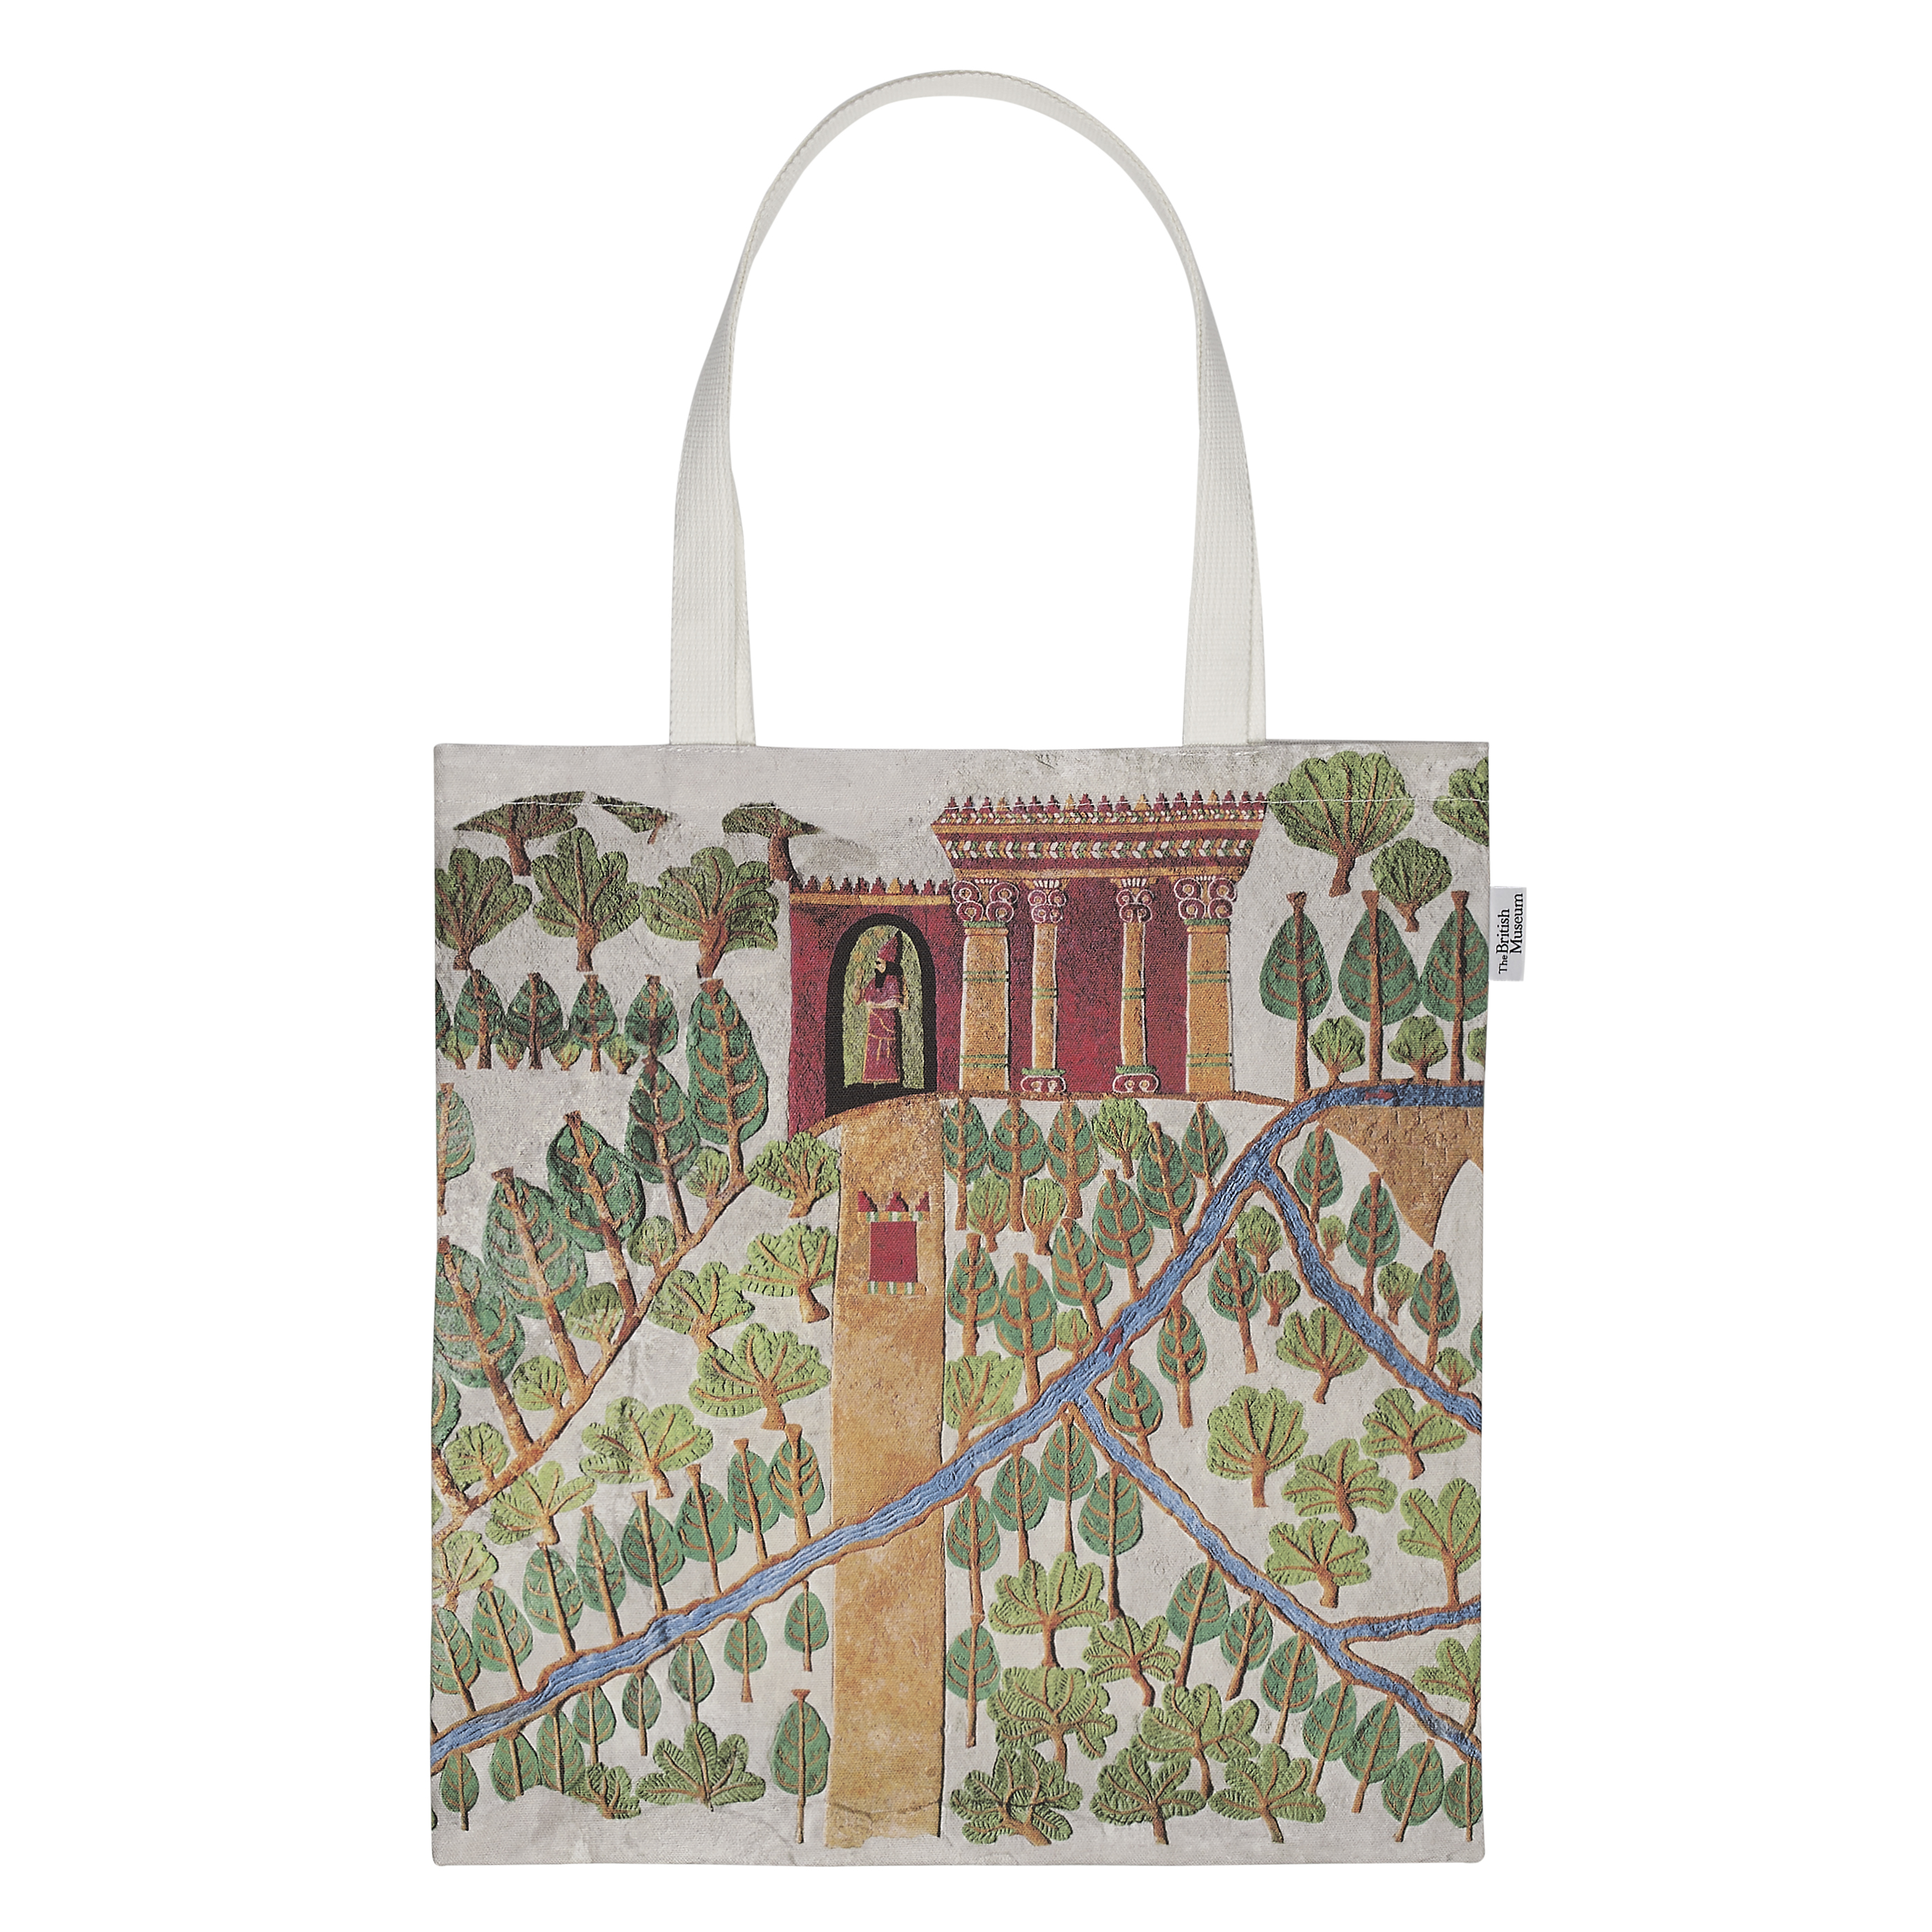 The Gardens of Nineveh totebag